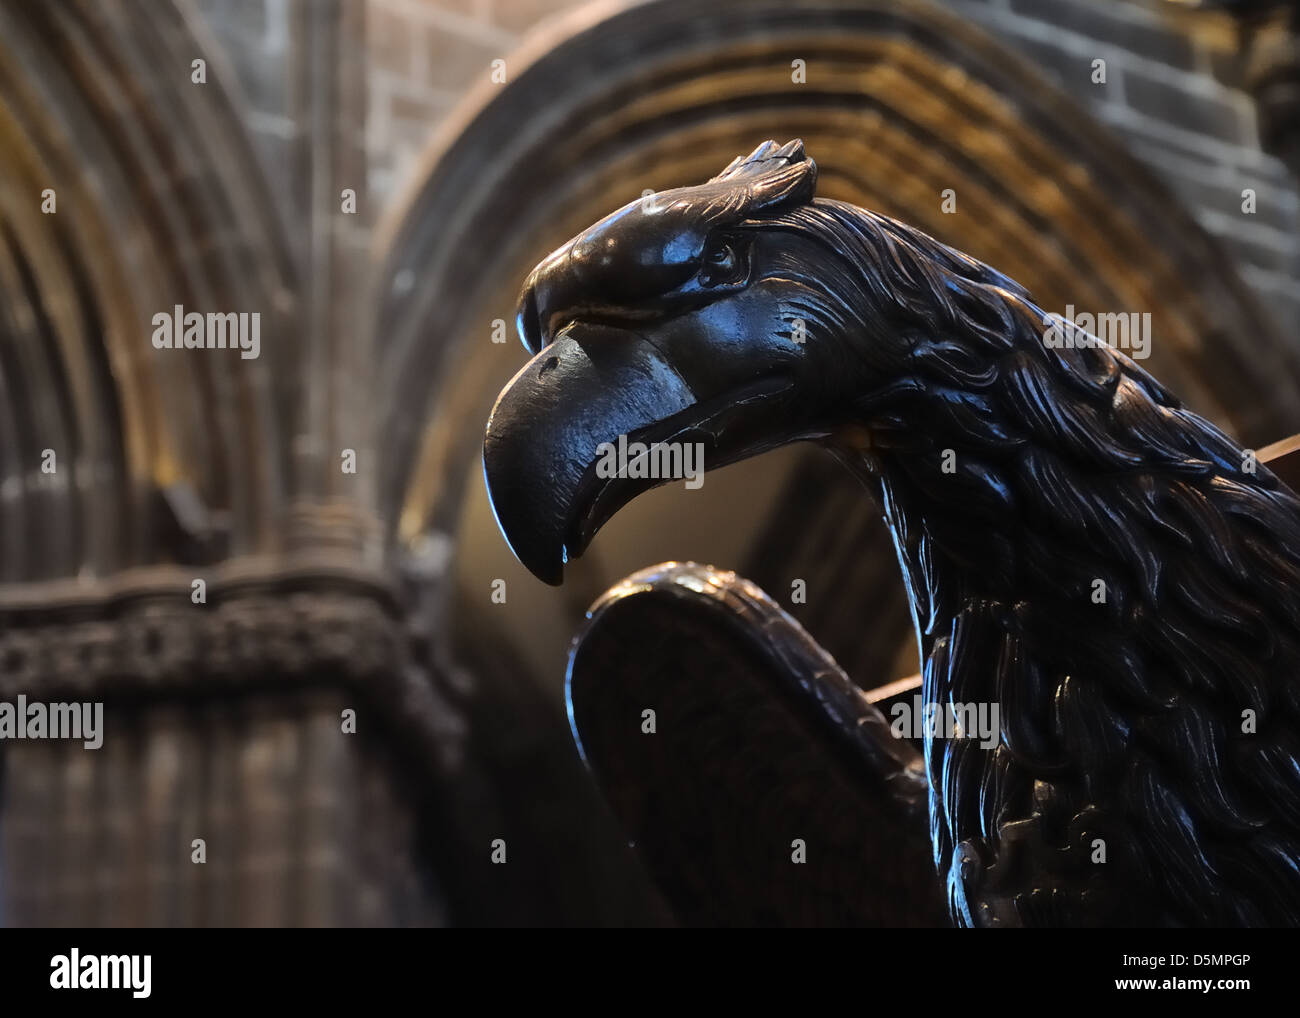 Bird head lectern in Glasgow Cathedral, Scotland, UK - Stock Image